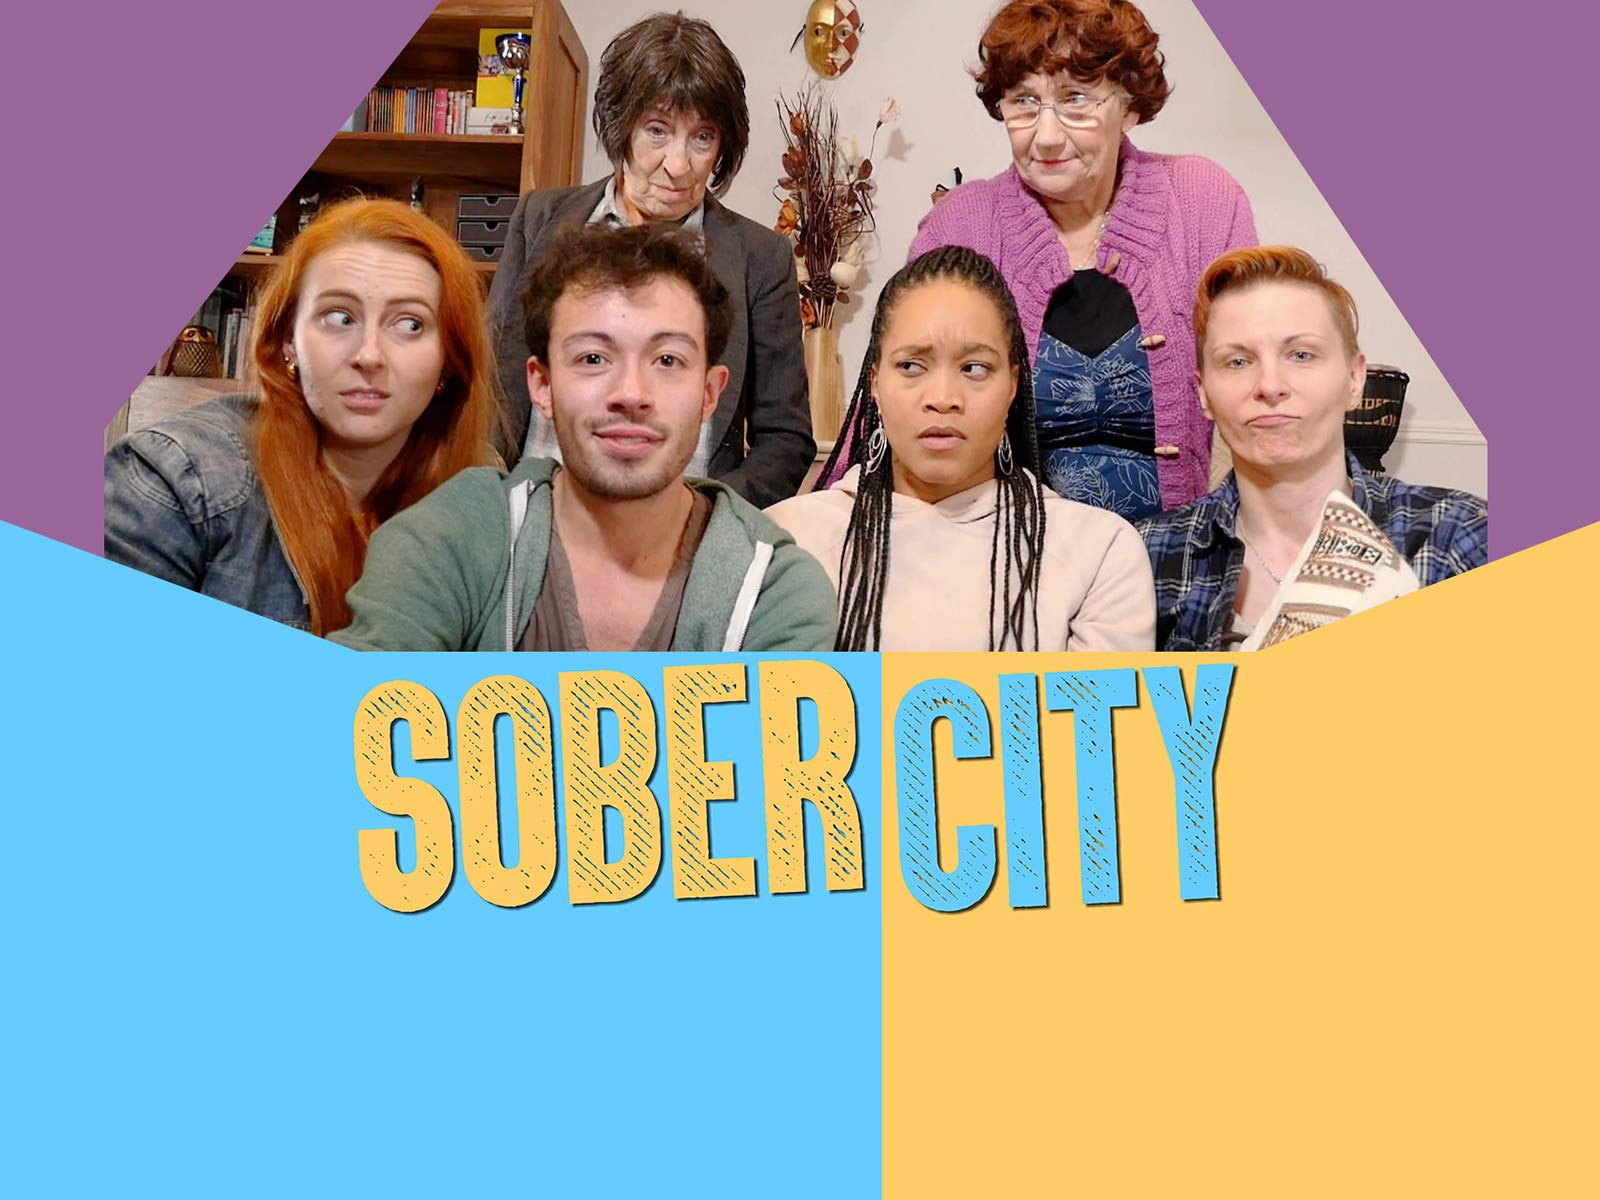 Clip: Sober City - Season 1